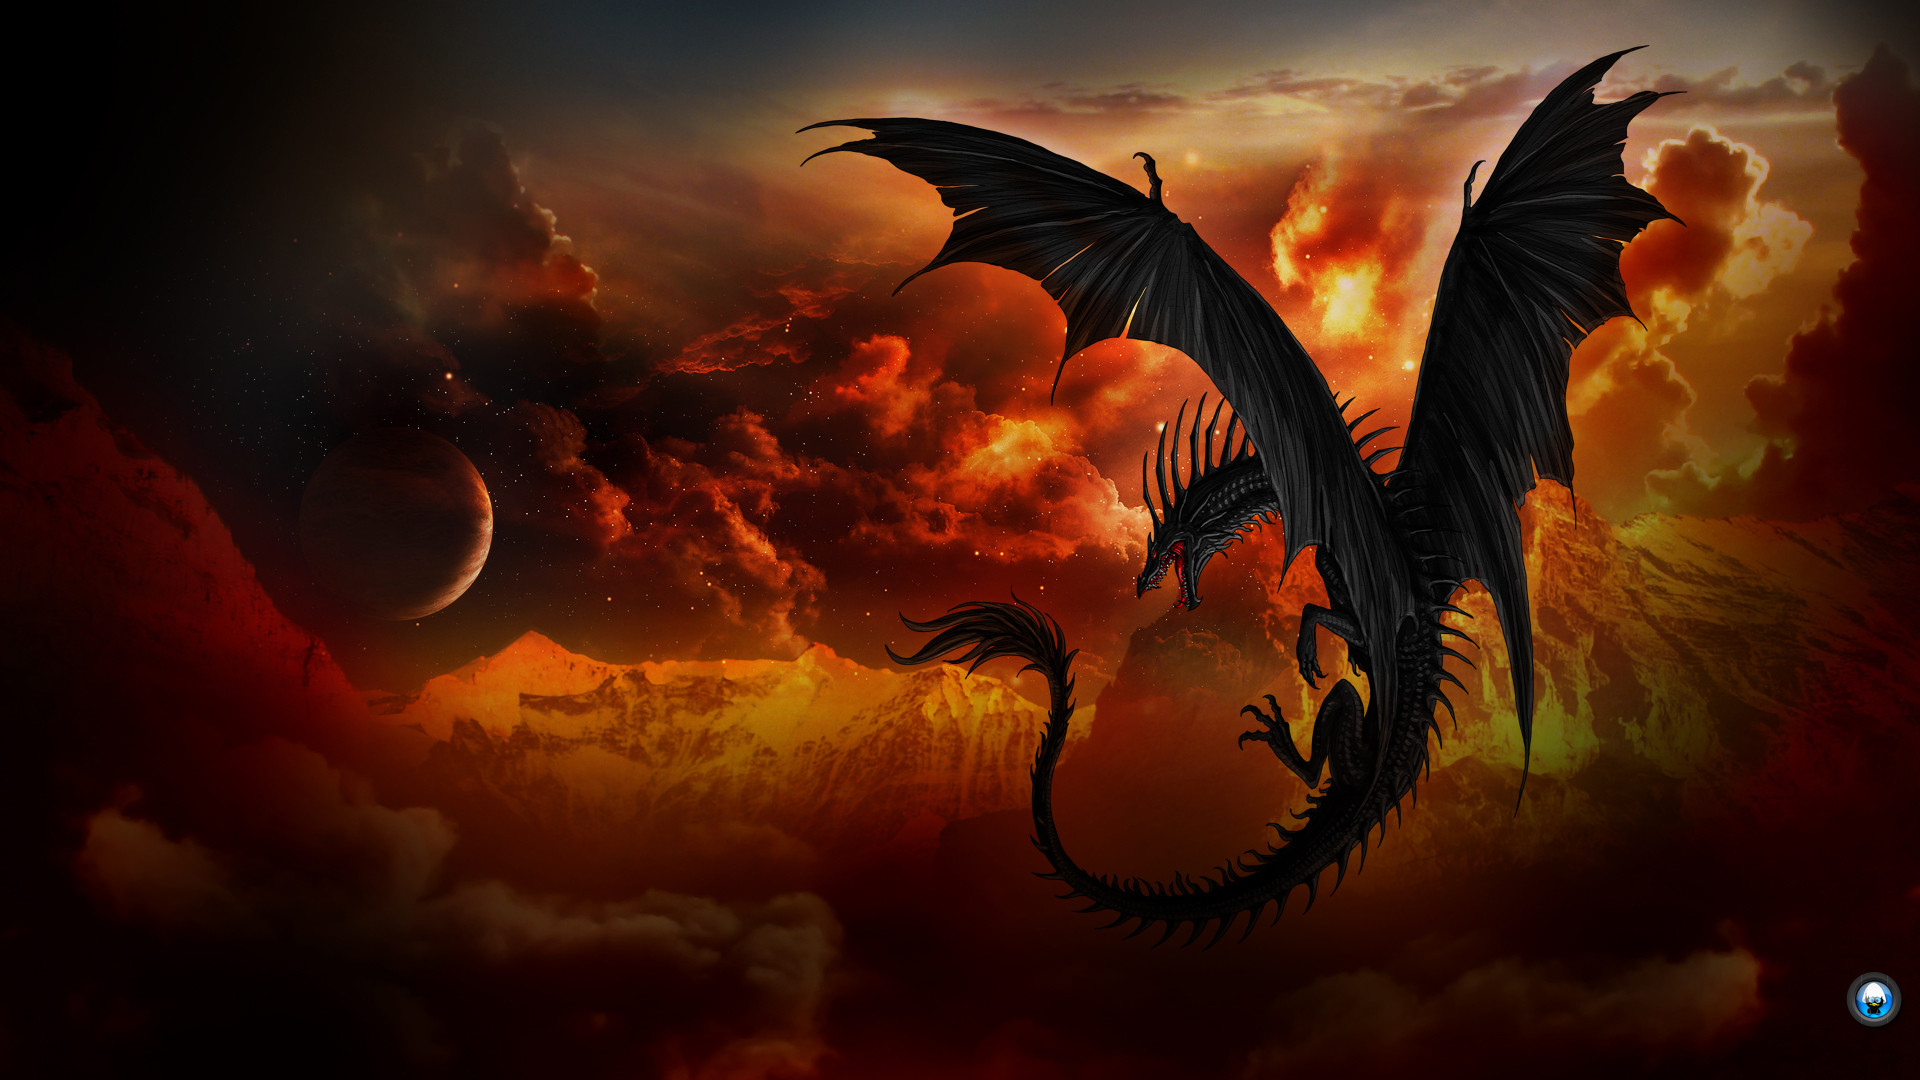 Download Free Lovely Dragon Wallpapers HD images